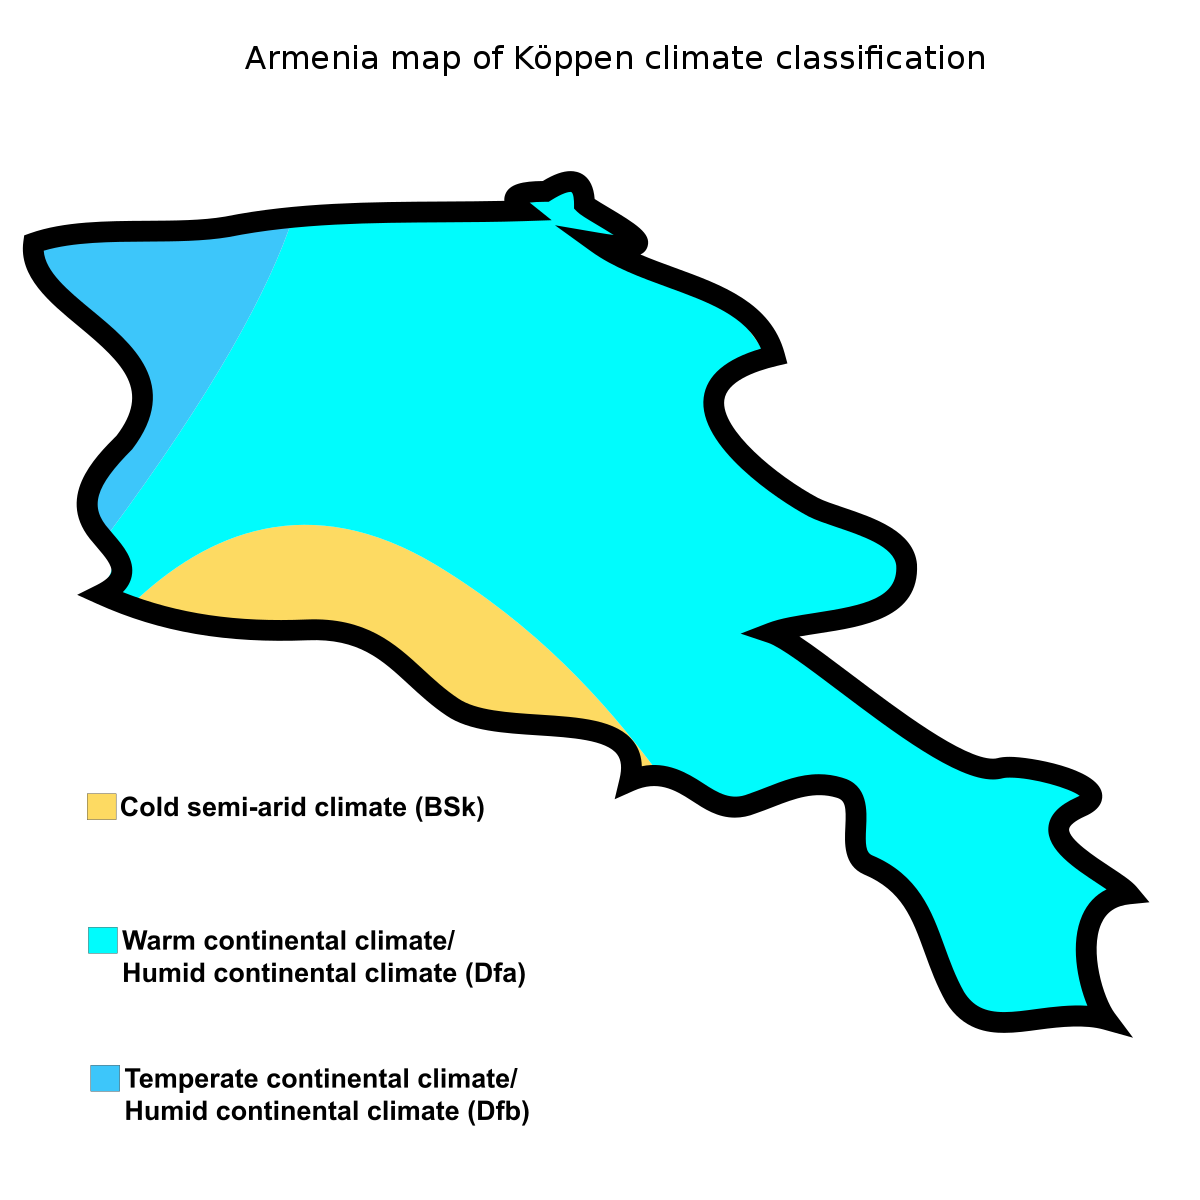 svg freeuse Of armenia wikipedia . Valley clipart environmental geography.